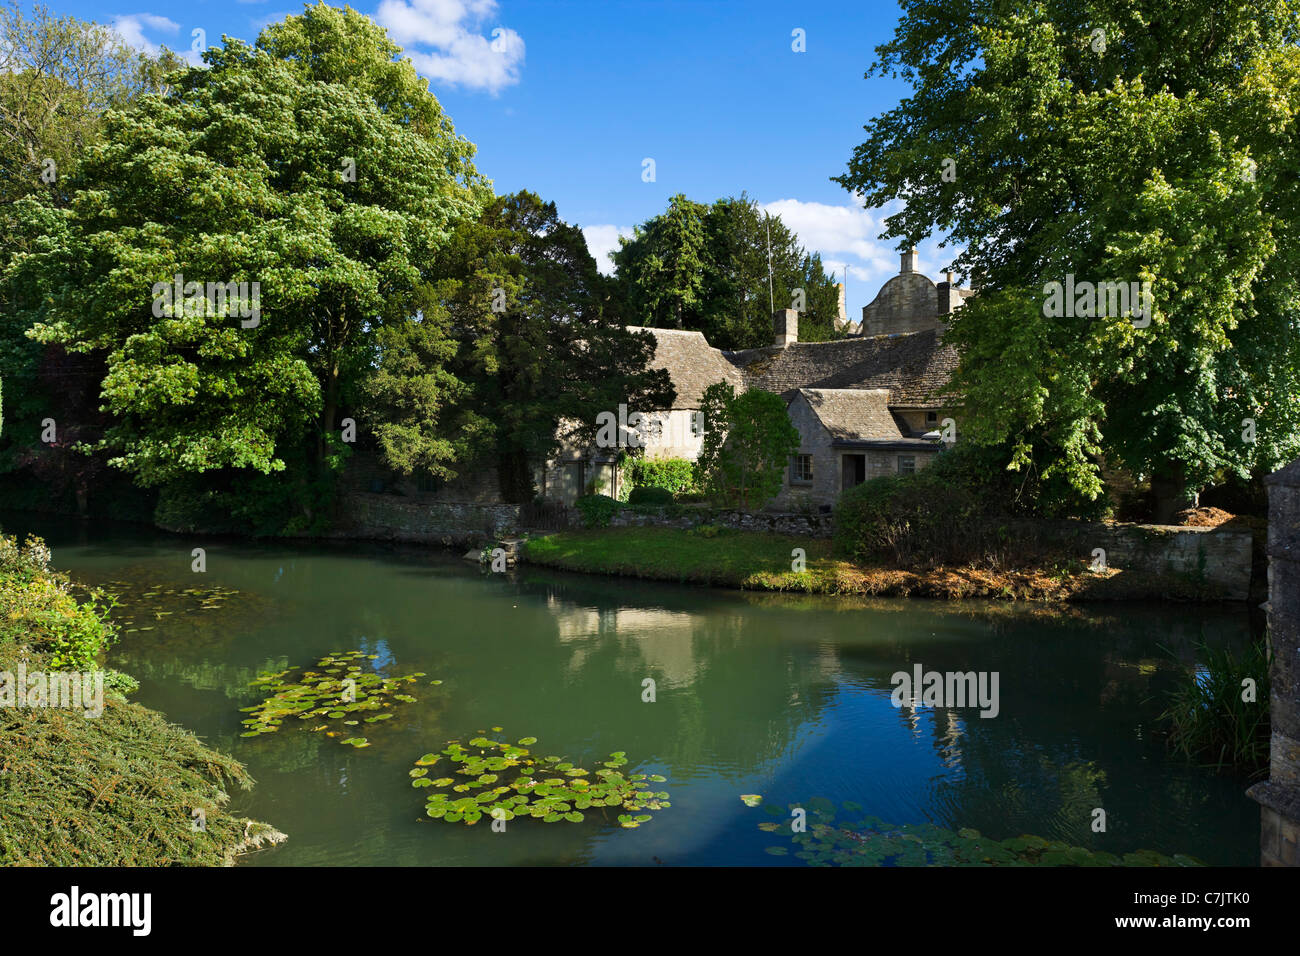 The River Windrush in the Cotswold town of Burford, Oxfordshire, England, UK - Stock Image